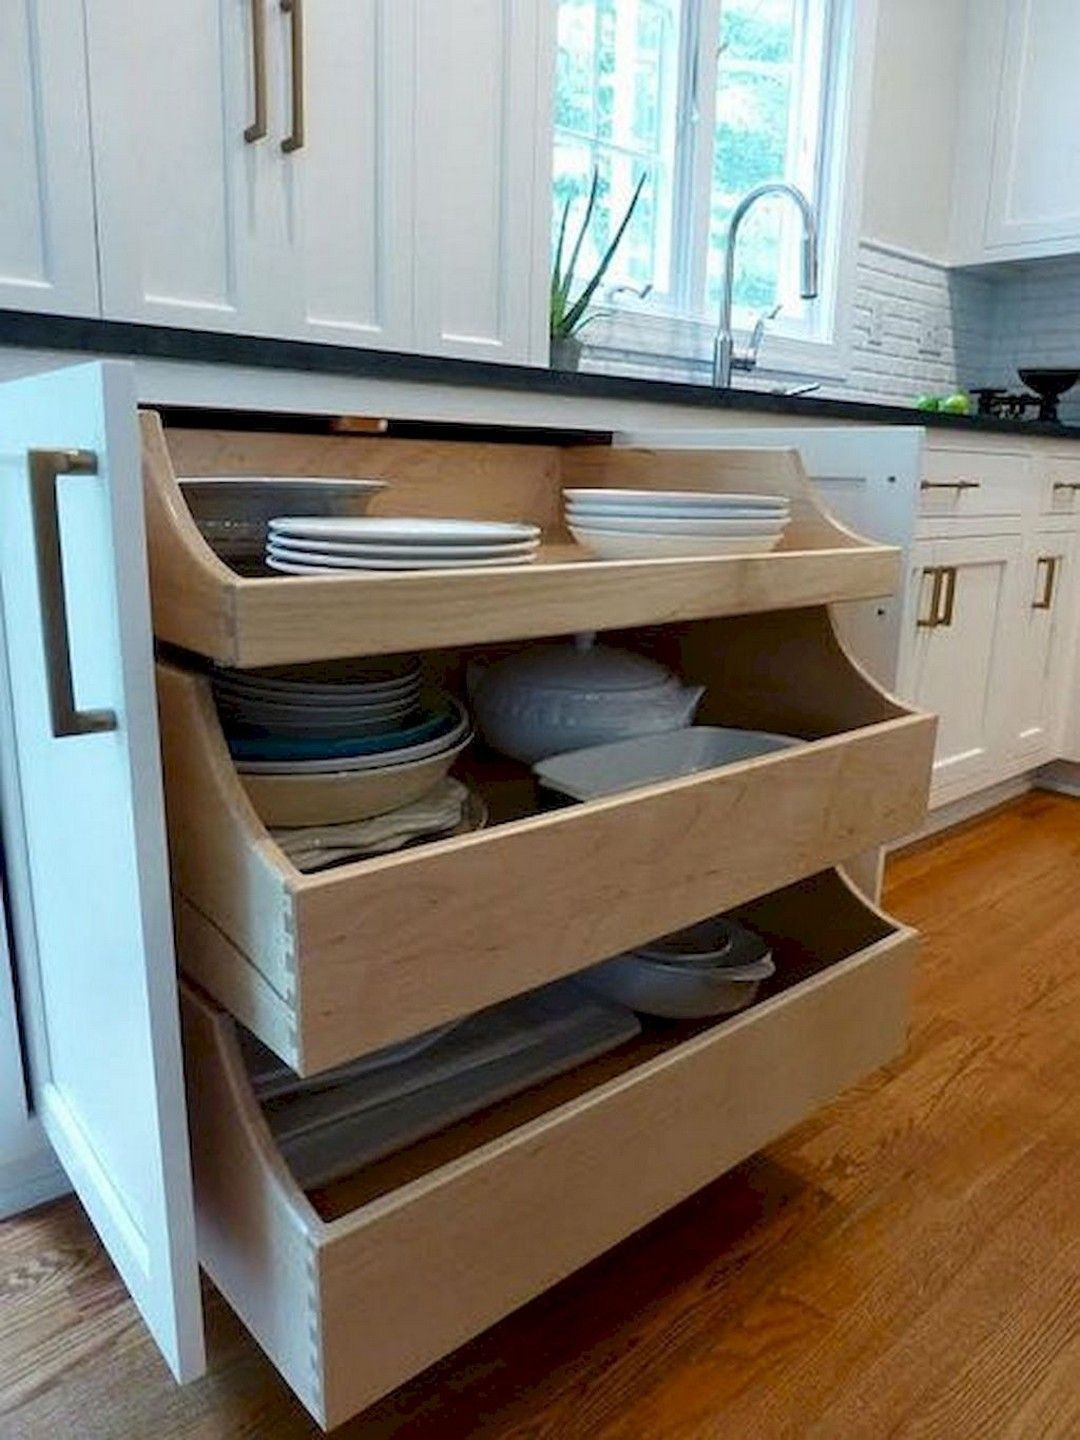 34 awesome kitchen storage ideas homepiez clever on clever ideas for diy kitchen cabinet organization tips for organizers id=17964